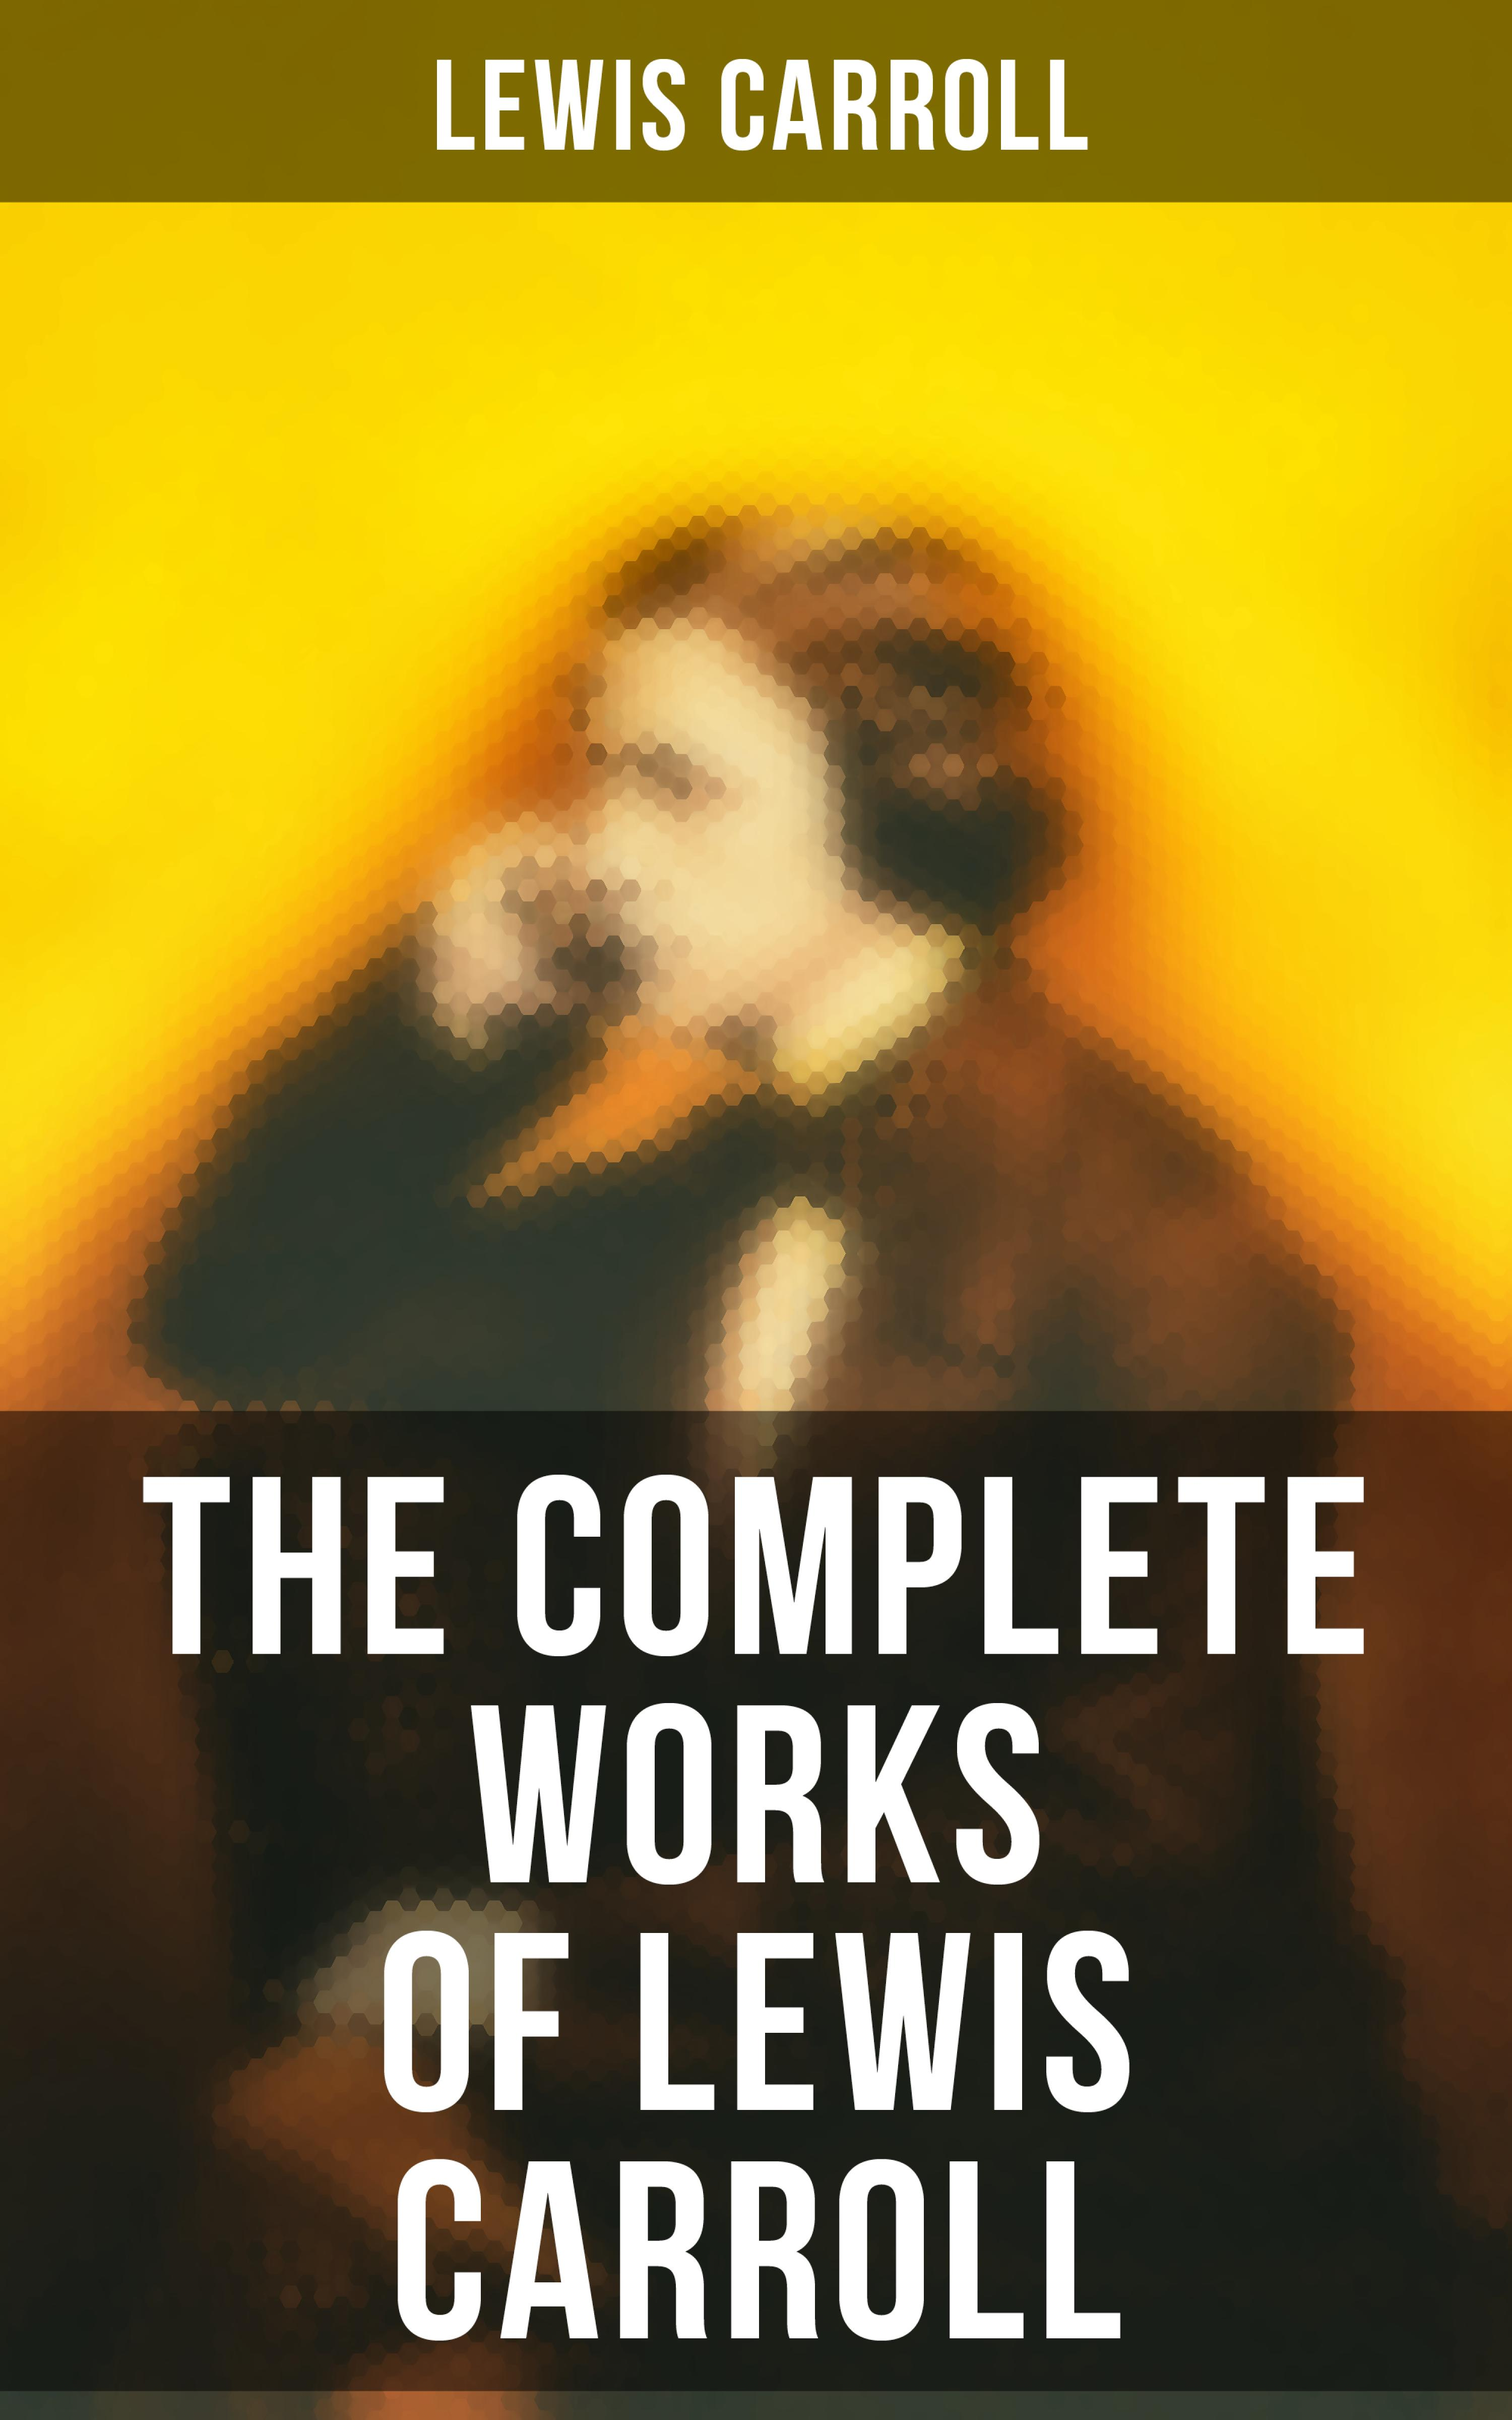 Lewis Carroll The Complete Works of Lewis Carroll